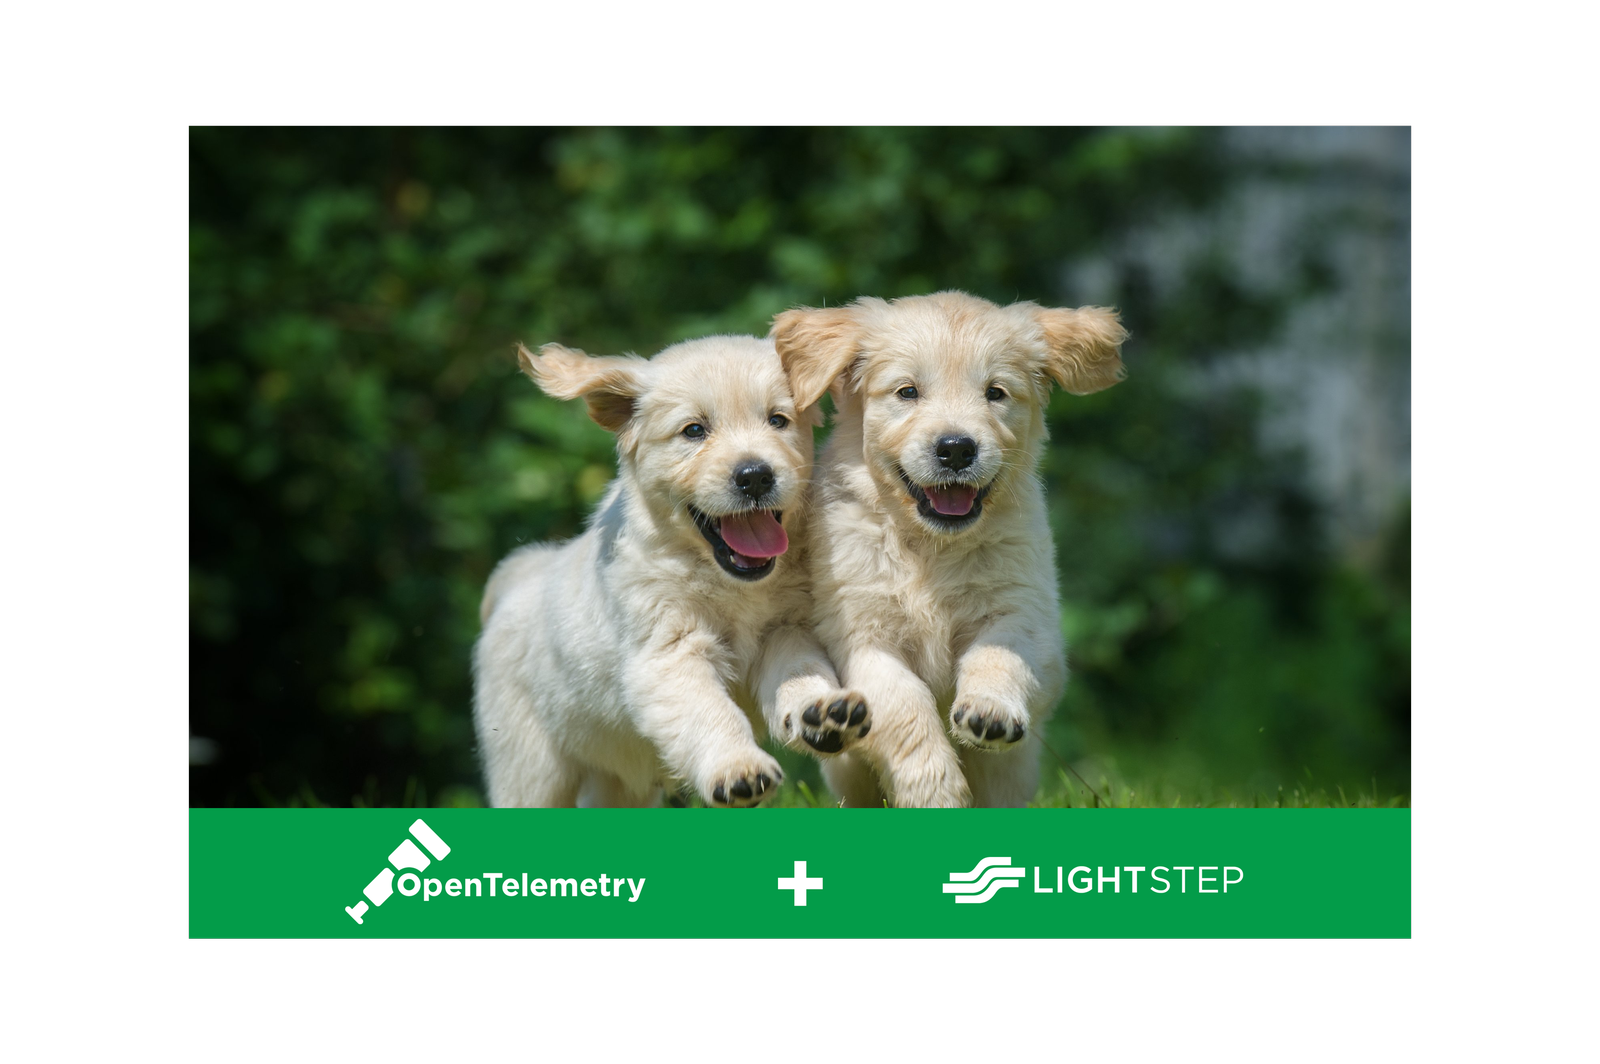 OpenTelemetry and Lightstep: Better Together